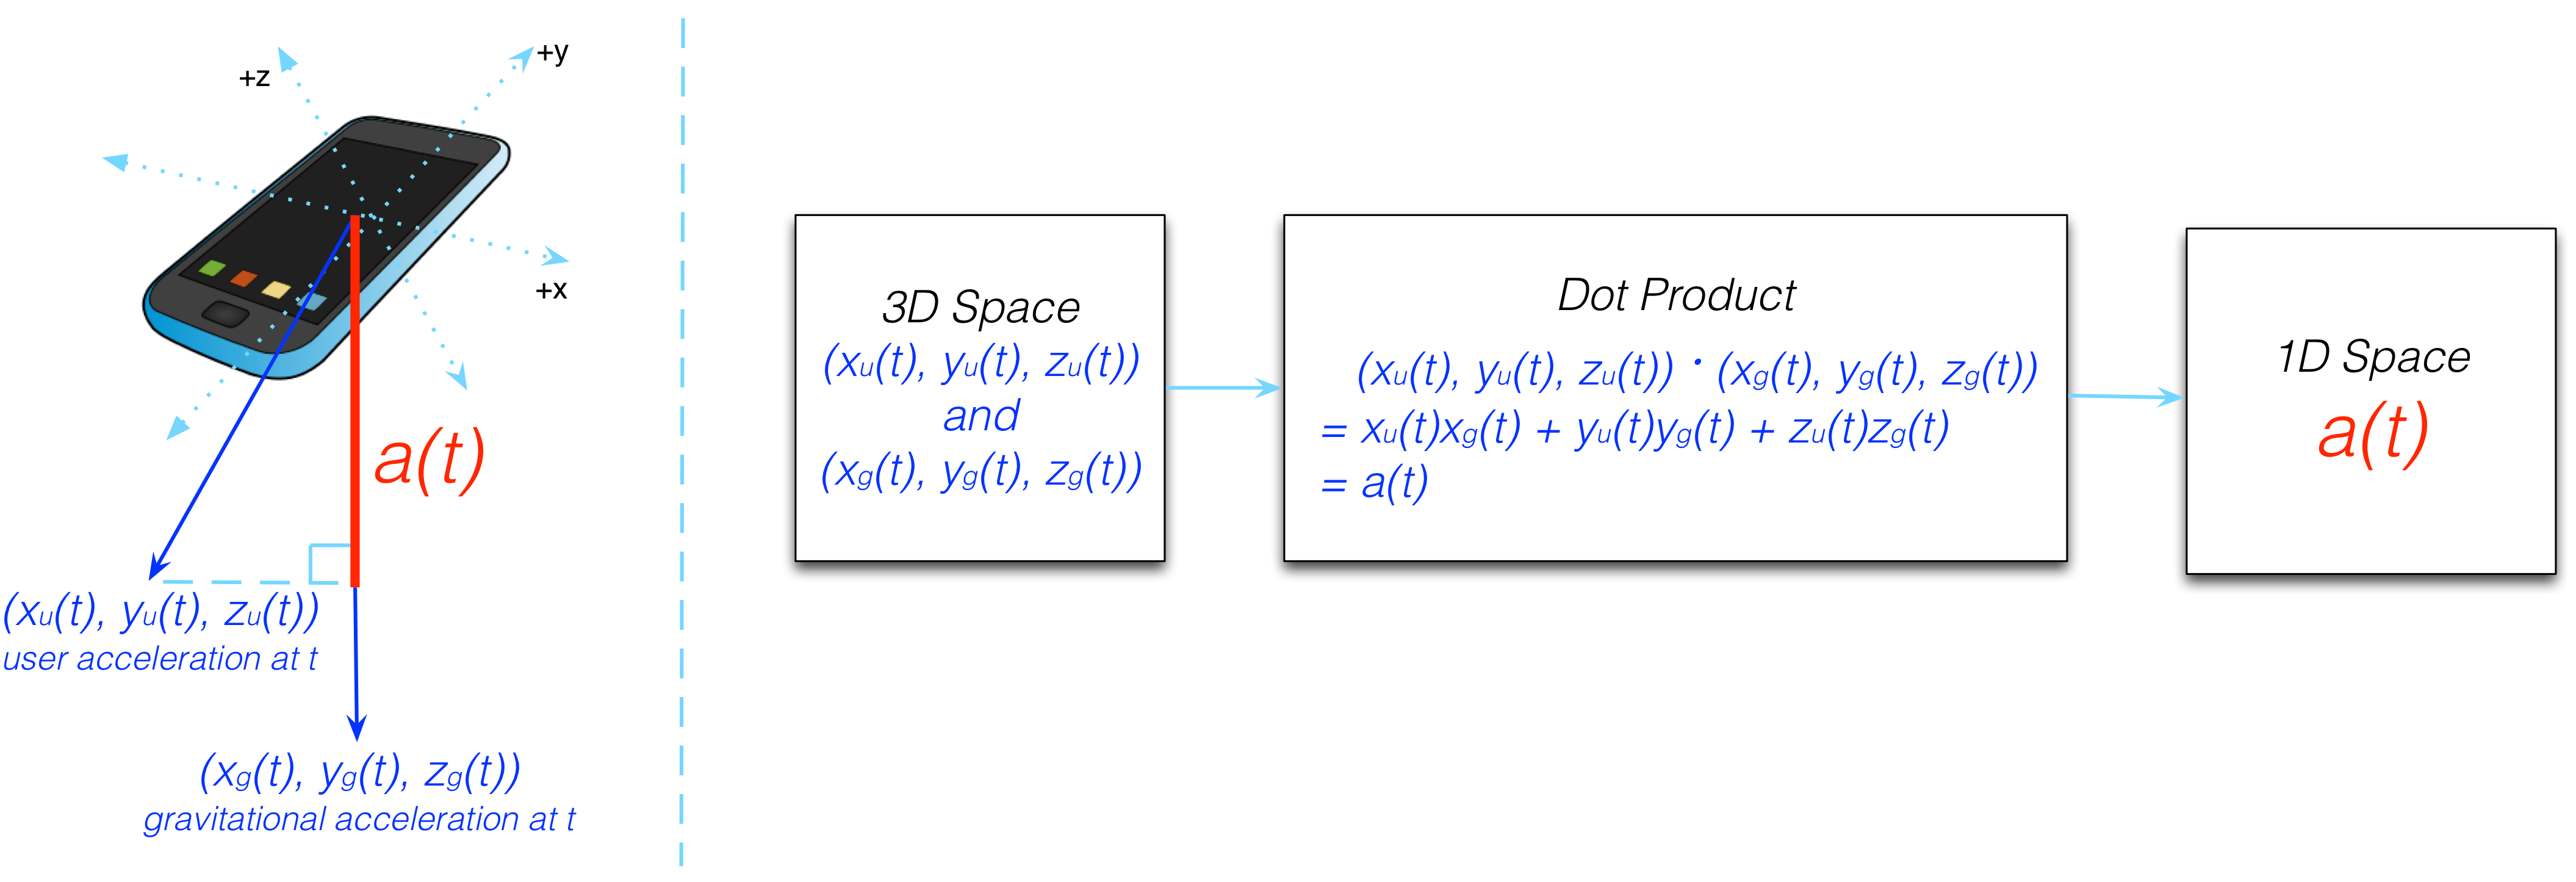 Figure 16.10 - The dot product